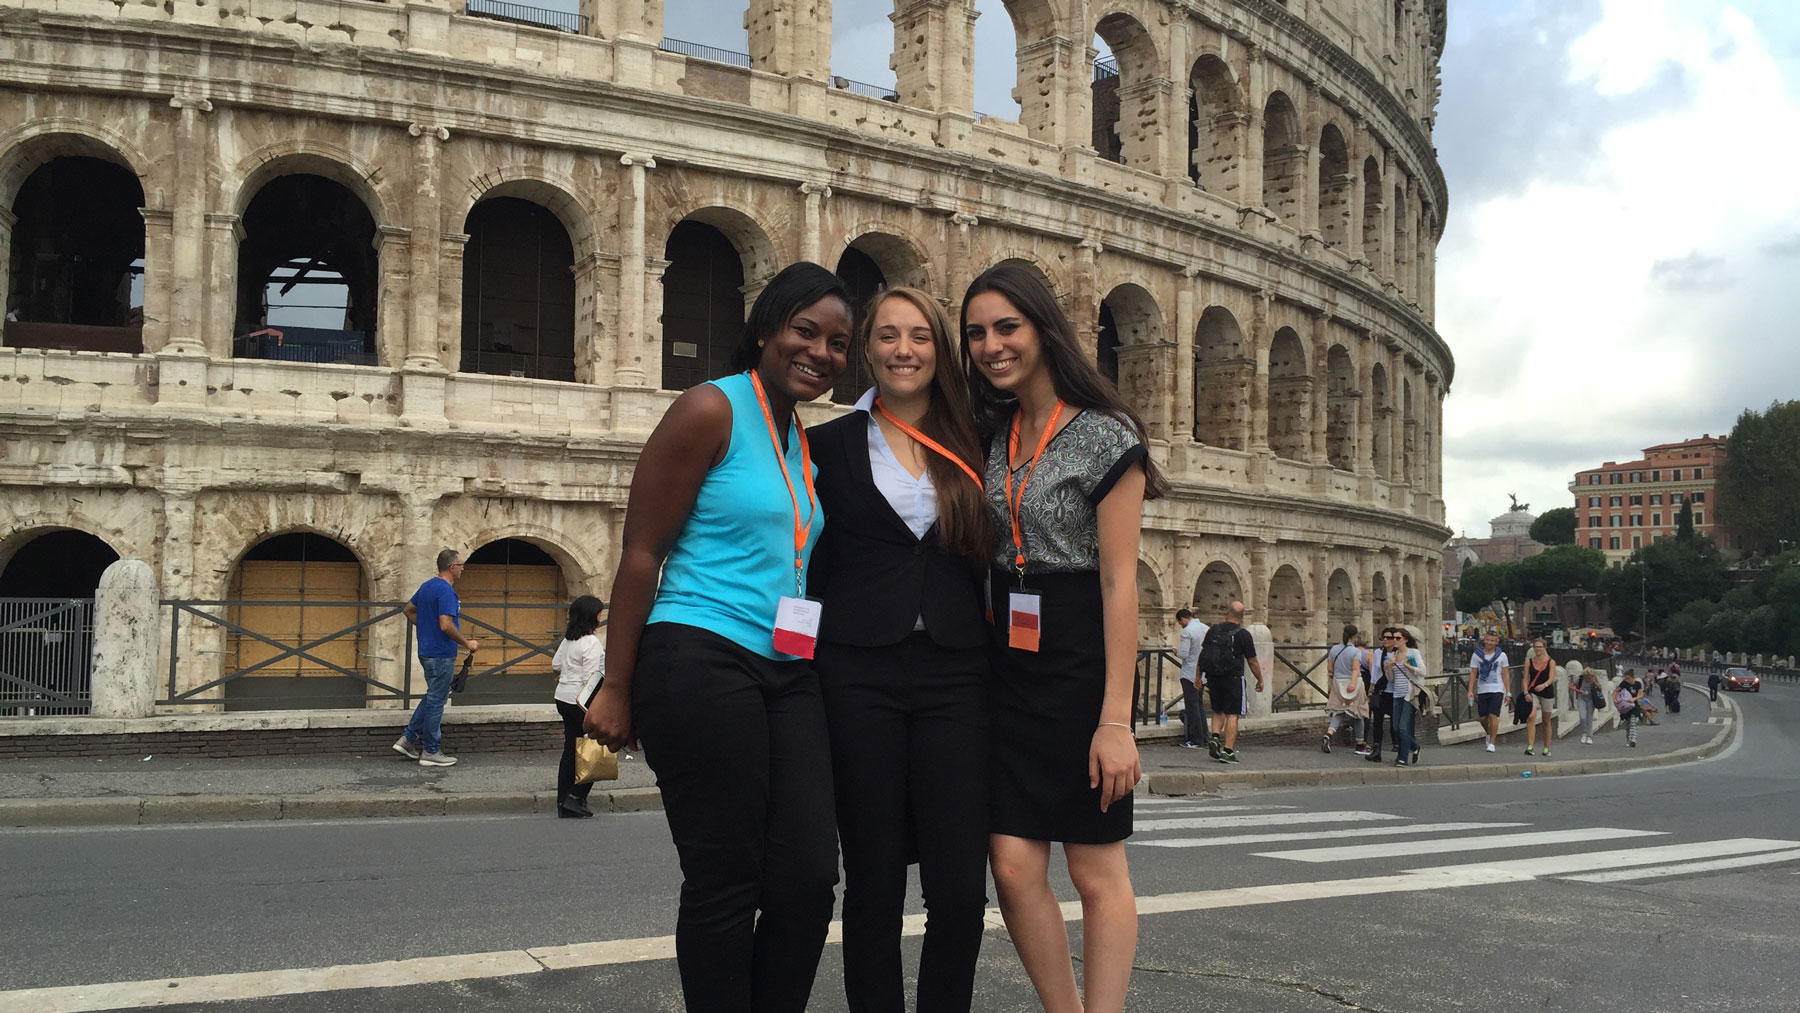 image of students outside the colosseum in Rome, Italy